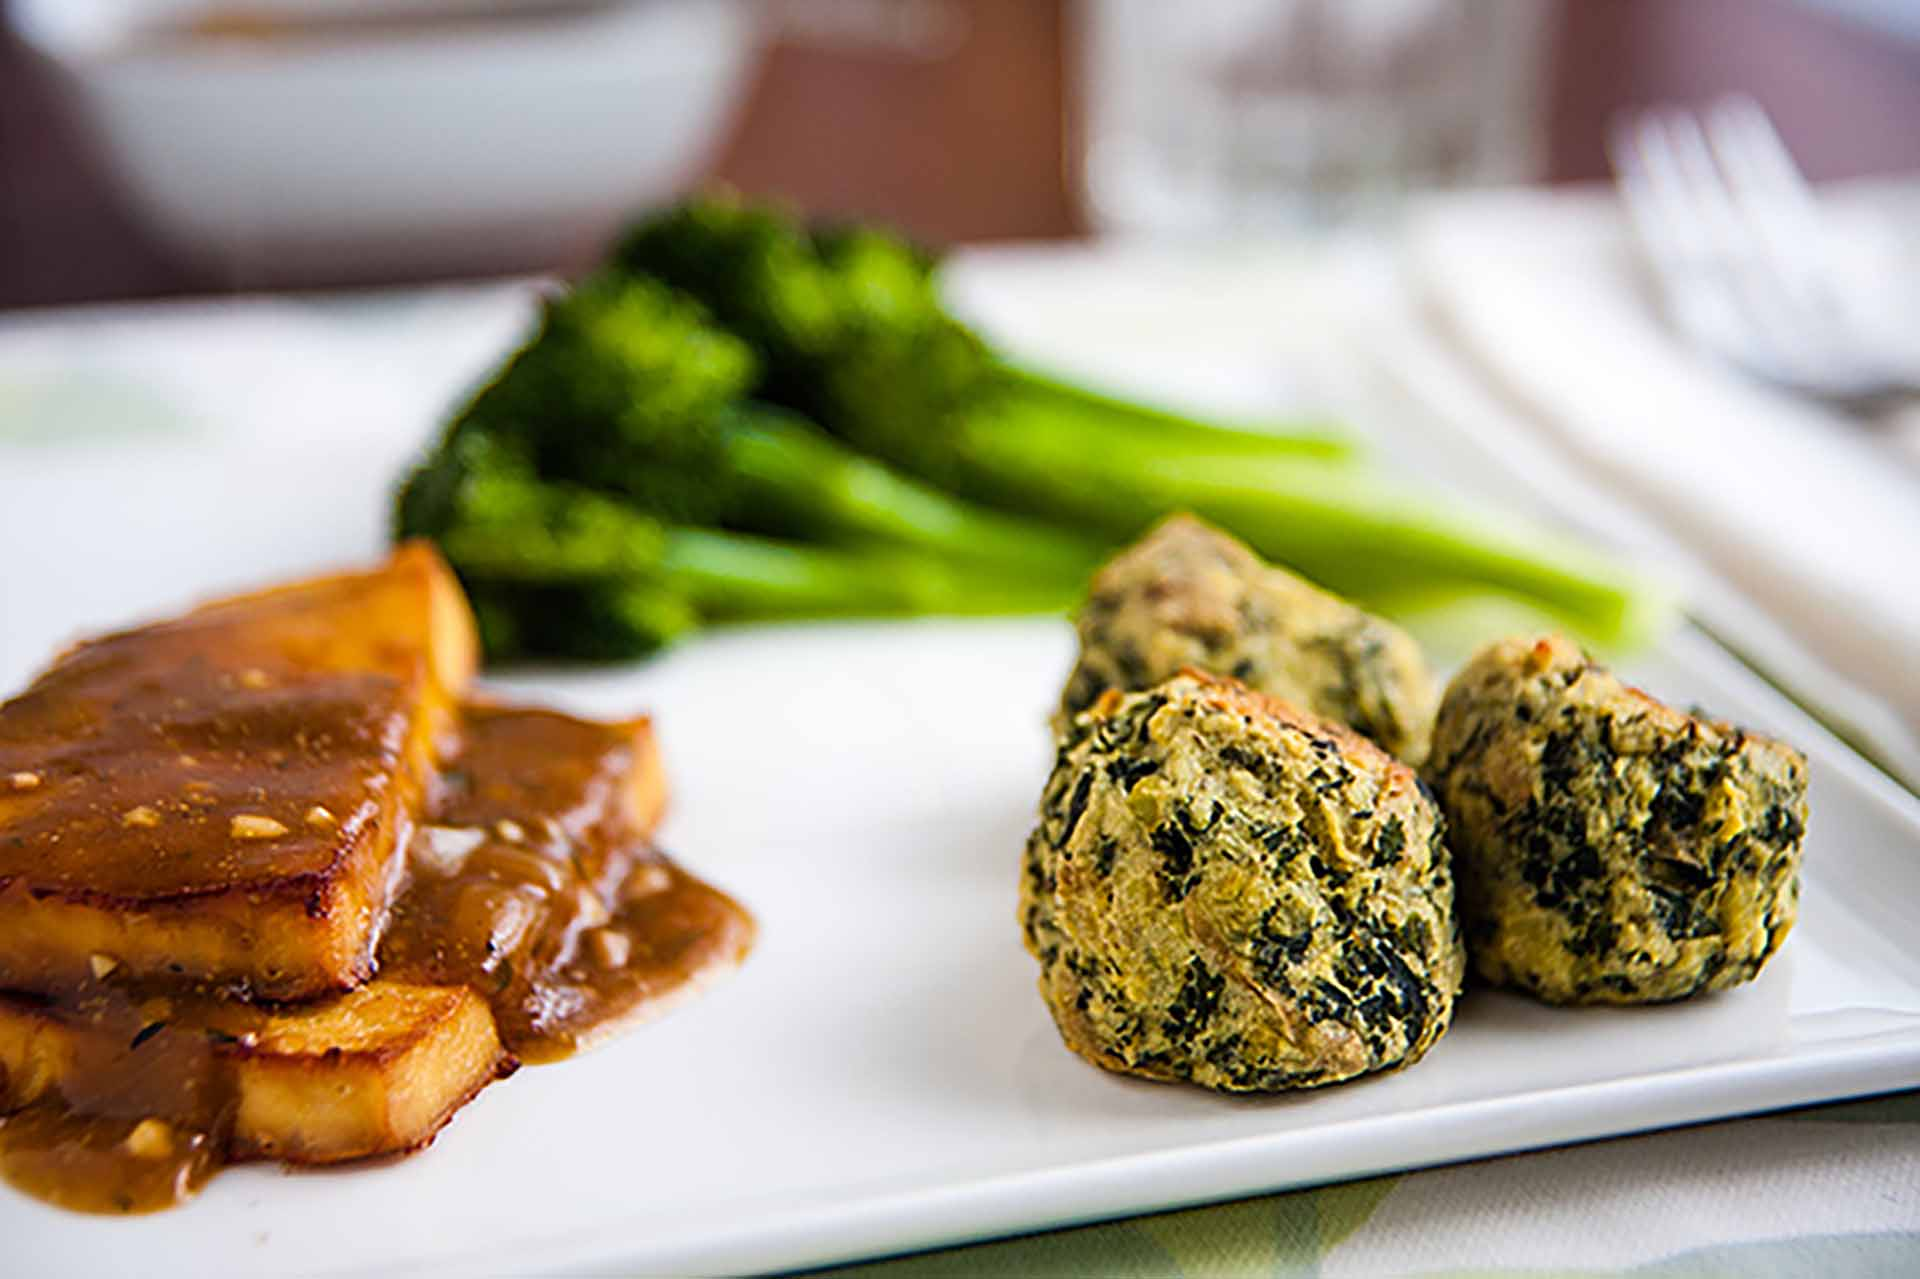 Plate of food featuring colcannon puffs